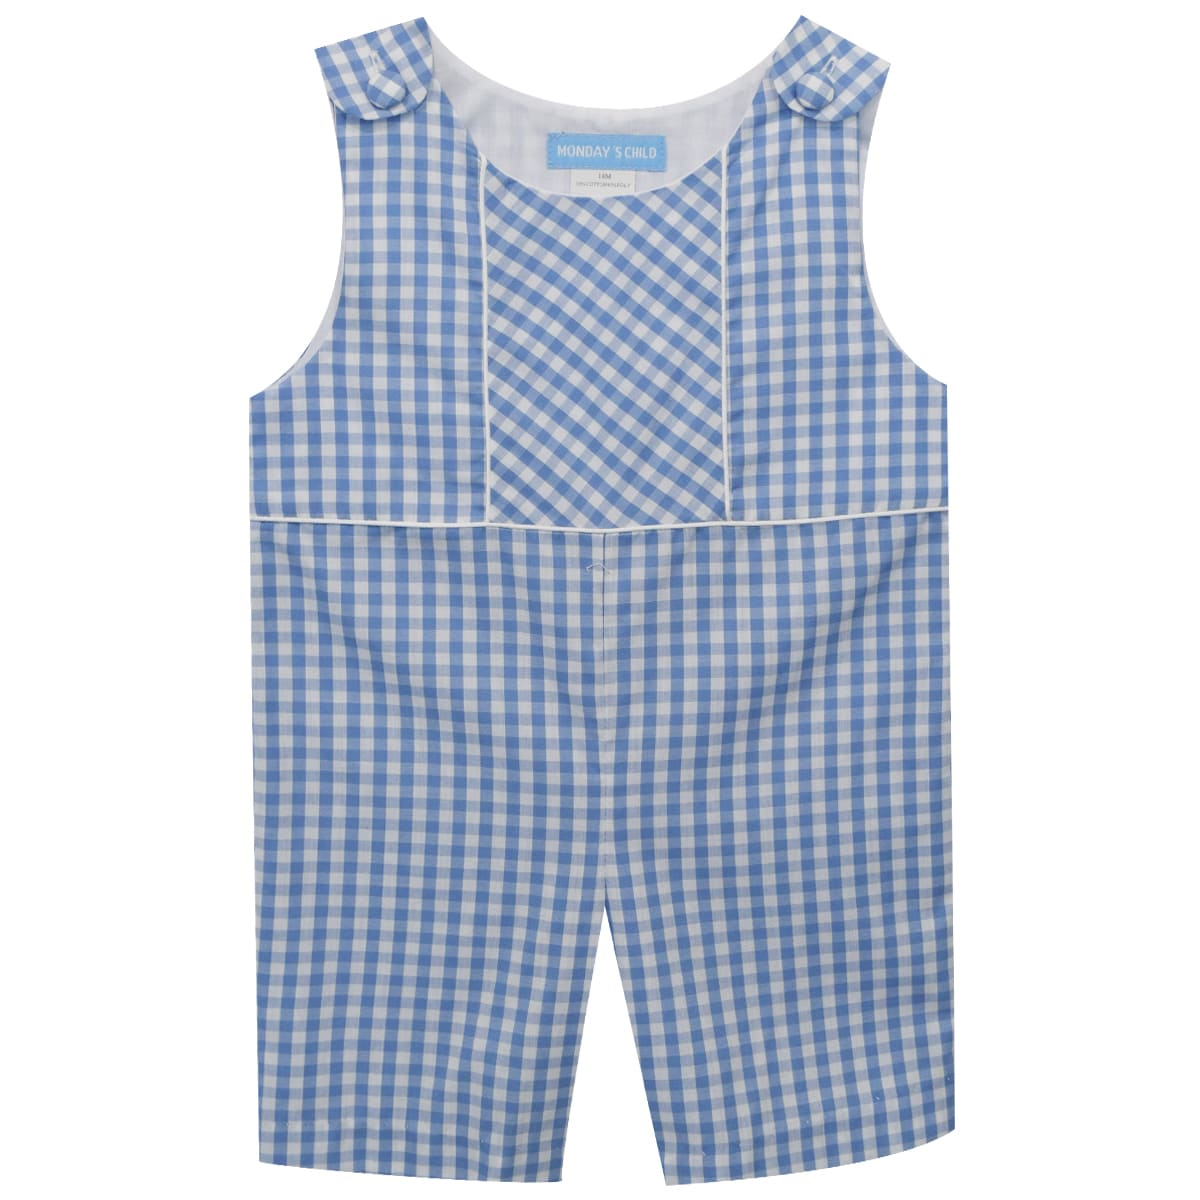 Blue Check Boys Shortall - Vive La Fête - Online Apparel Store